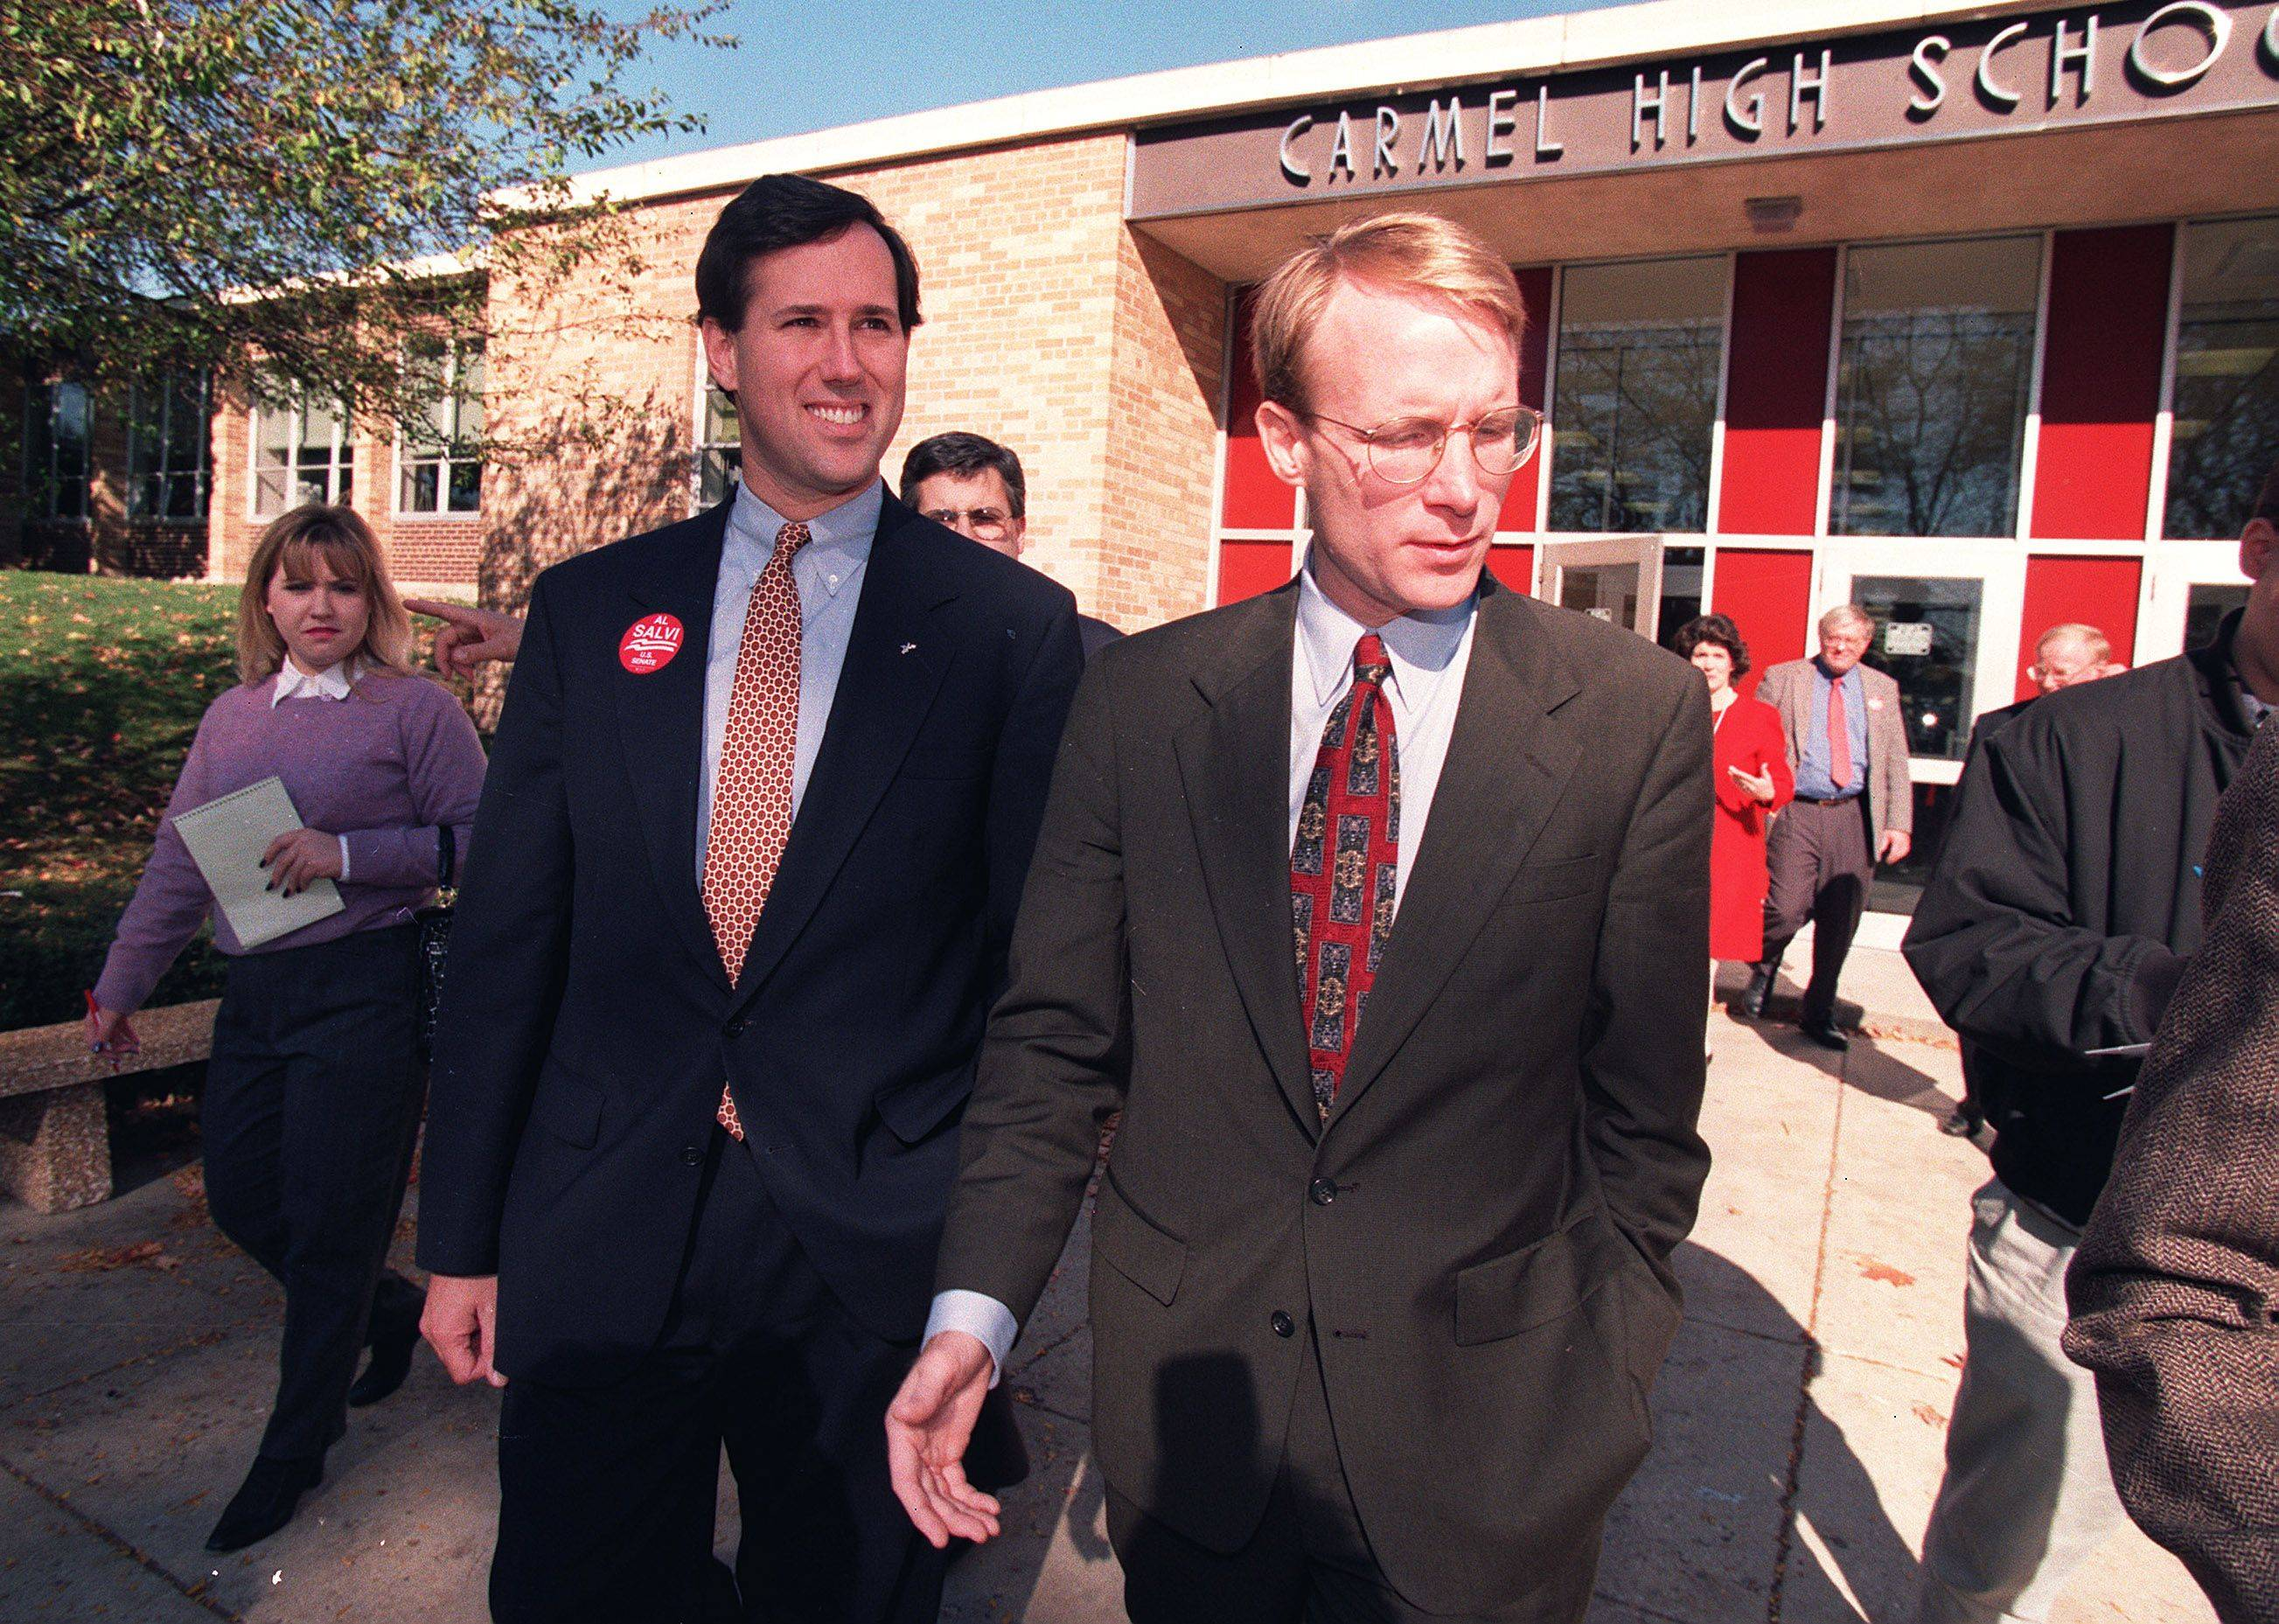 Then a freshman senator, Rick Santorum, left, campaigned for Al Salvi's own senate bid in 1996. Both attended Carmel Catholic High School in the 1970s.